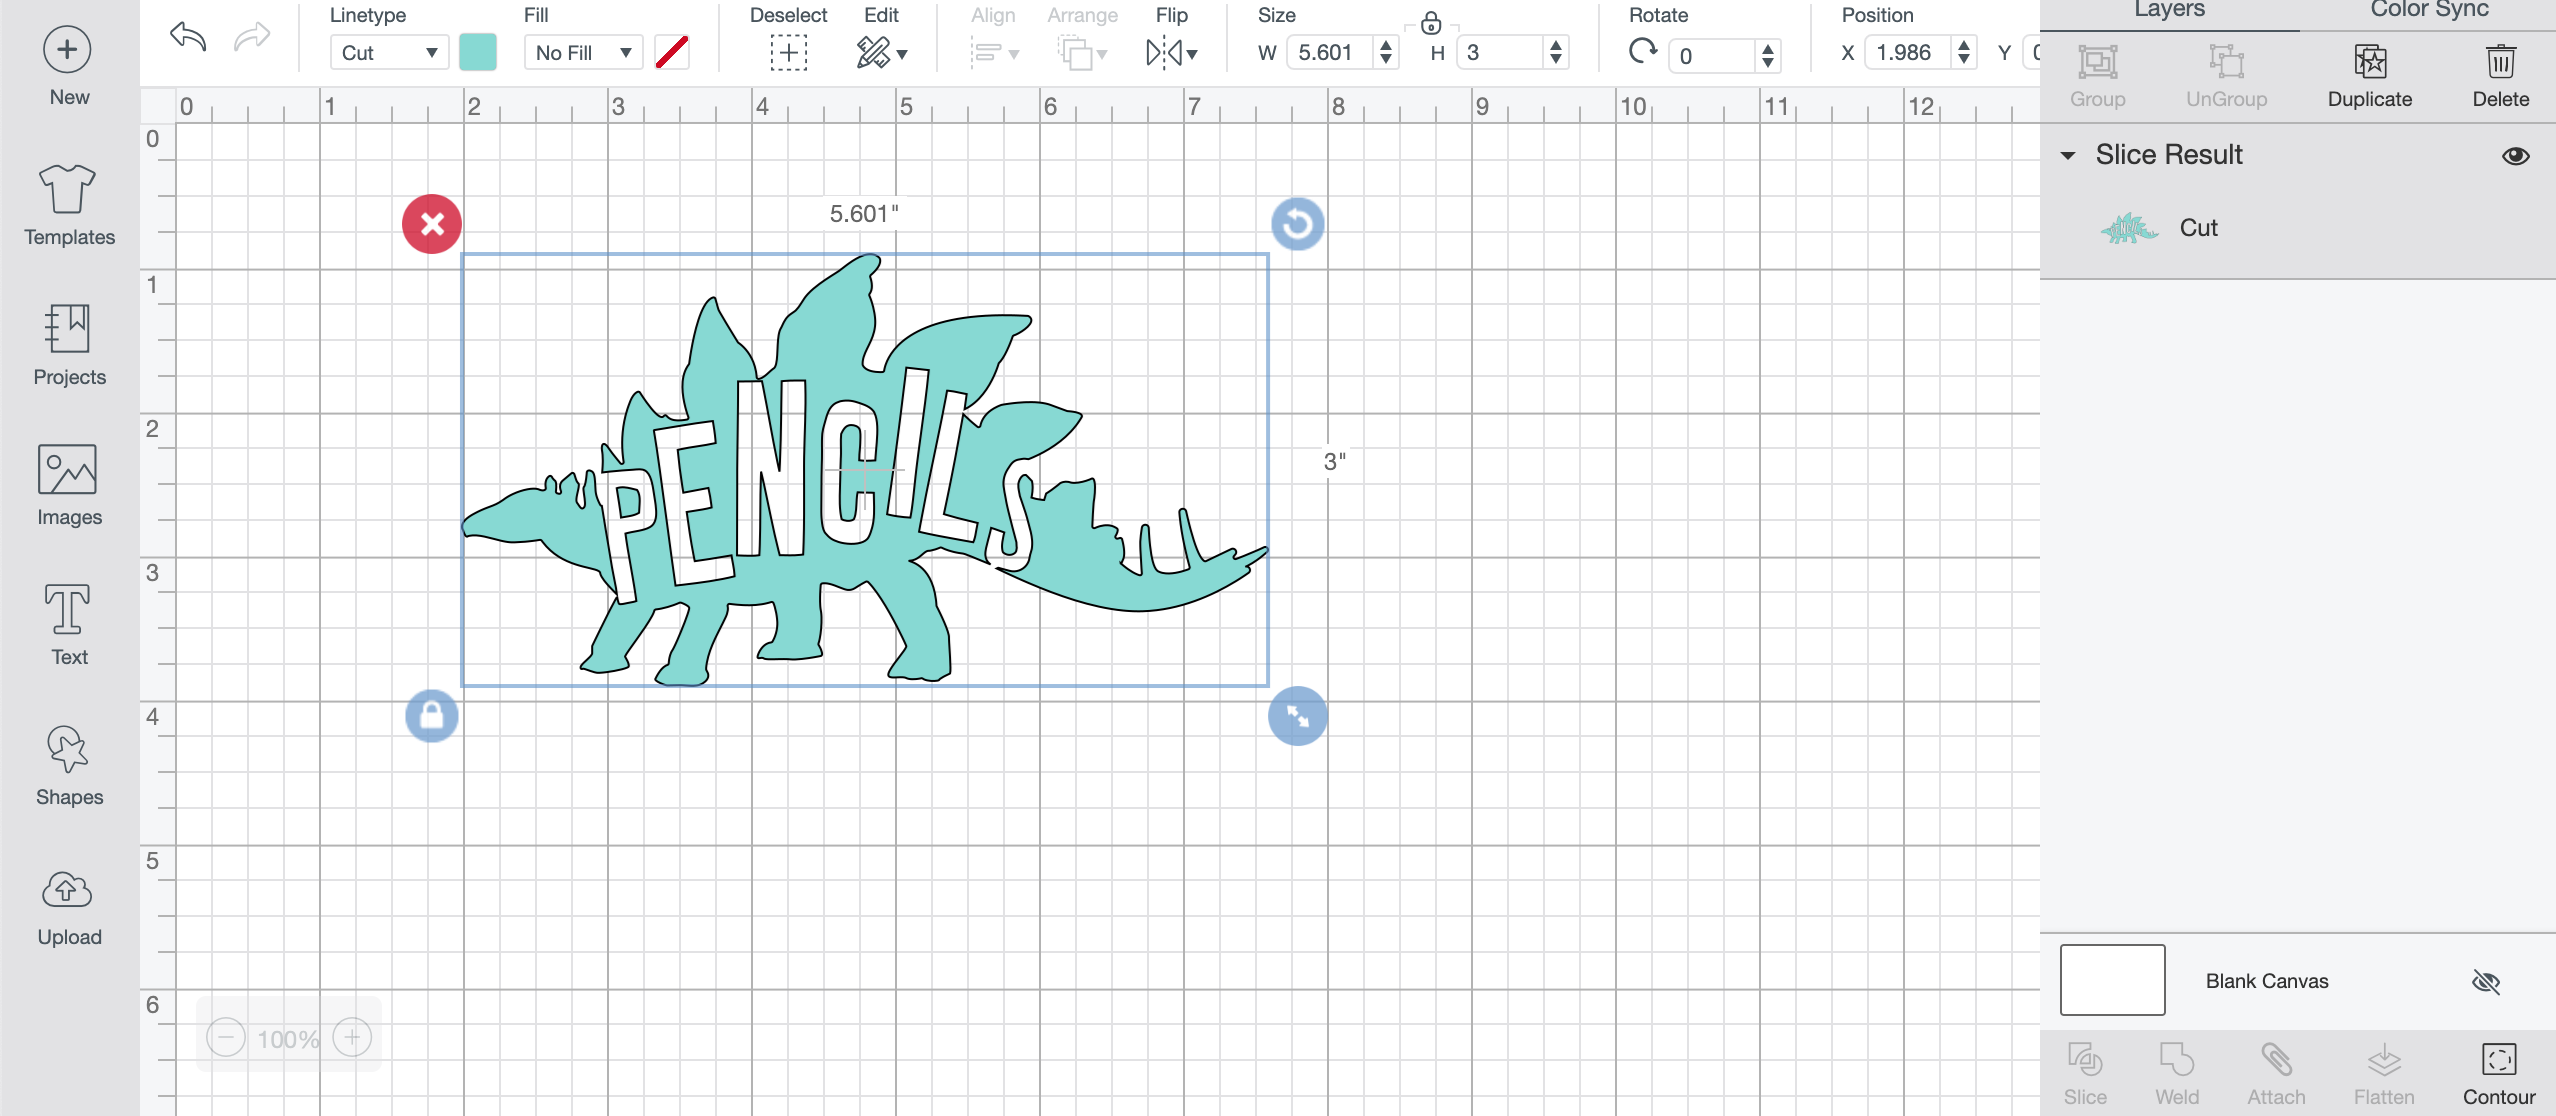 How to create knockout designs with text in images with Cricut Design Space